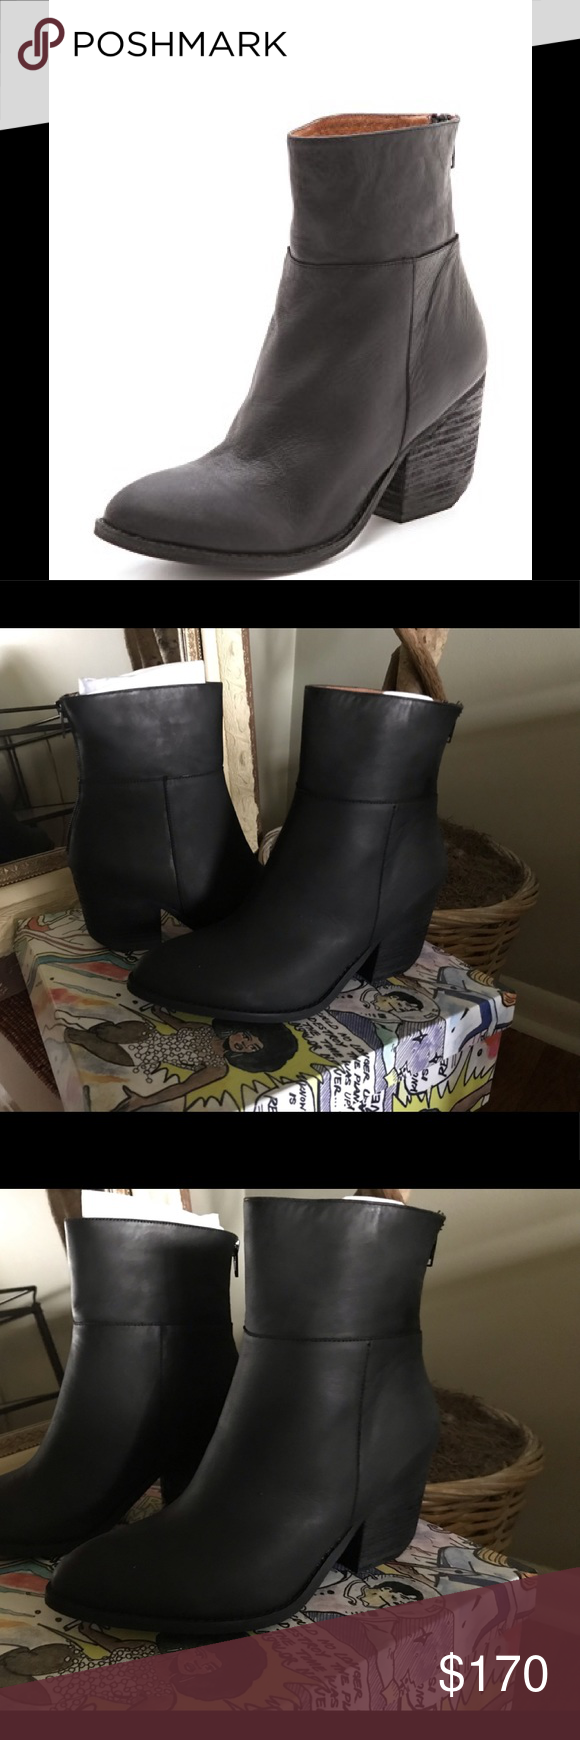 Jeffrey Campbell Shoes | Jeffrey Campbell Leather Ankle Boot | Color: Black | Size: Various #skinnyjeansandankleboots Jeffrey Campbell Leather Ankle Boot Jeffrey Campbell Black Calf Leather Ankle Boot w/back zip.  Brand new w/box.  No trades. True to size.  ** looks great with skinny jeans** Jeffrey Campbell Shoes Ankle Boots & Booties #skinnyjeansandankleboots Jeffrey Campbell Shoes | Jeffrey Campbell Leather Ankle Boot | Color: Black | Size: Various #skinnyjeansandankleboots Jeffrey Campbell L #skinnyjeansandankleboots